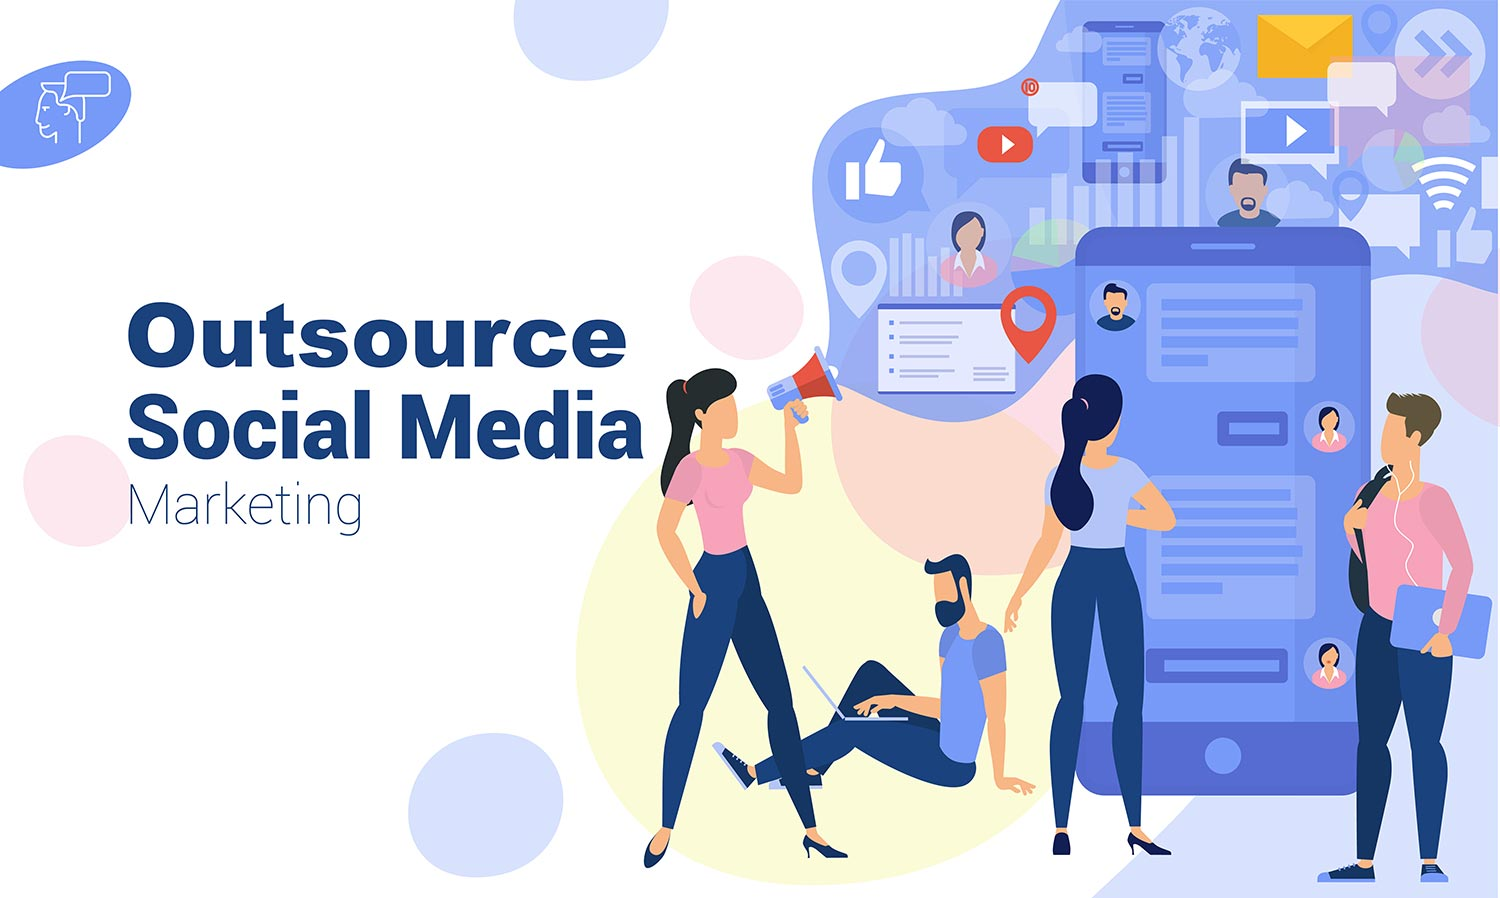 Advantages of outsourcing social media marketing